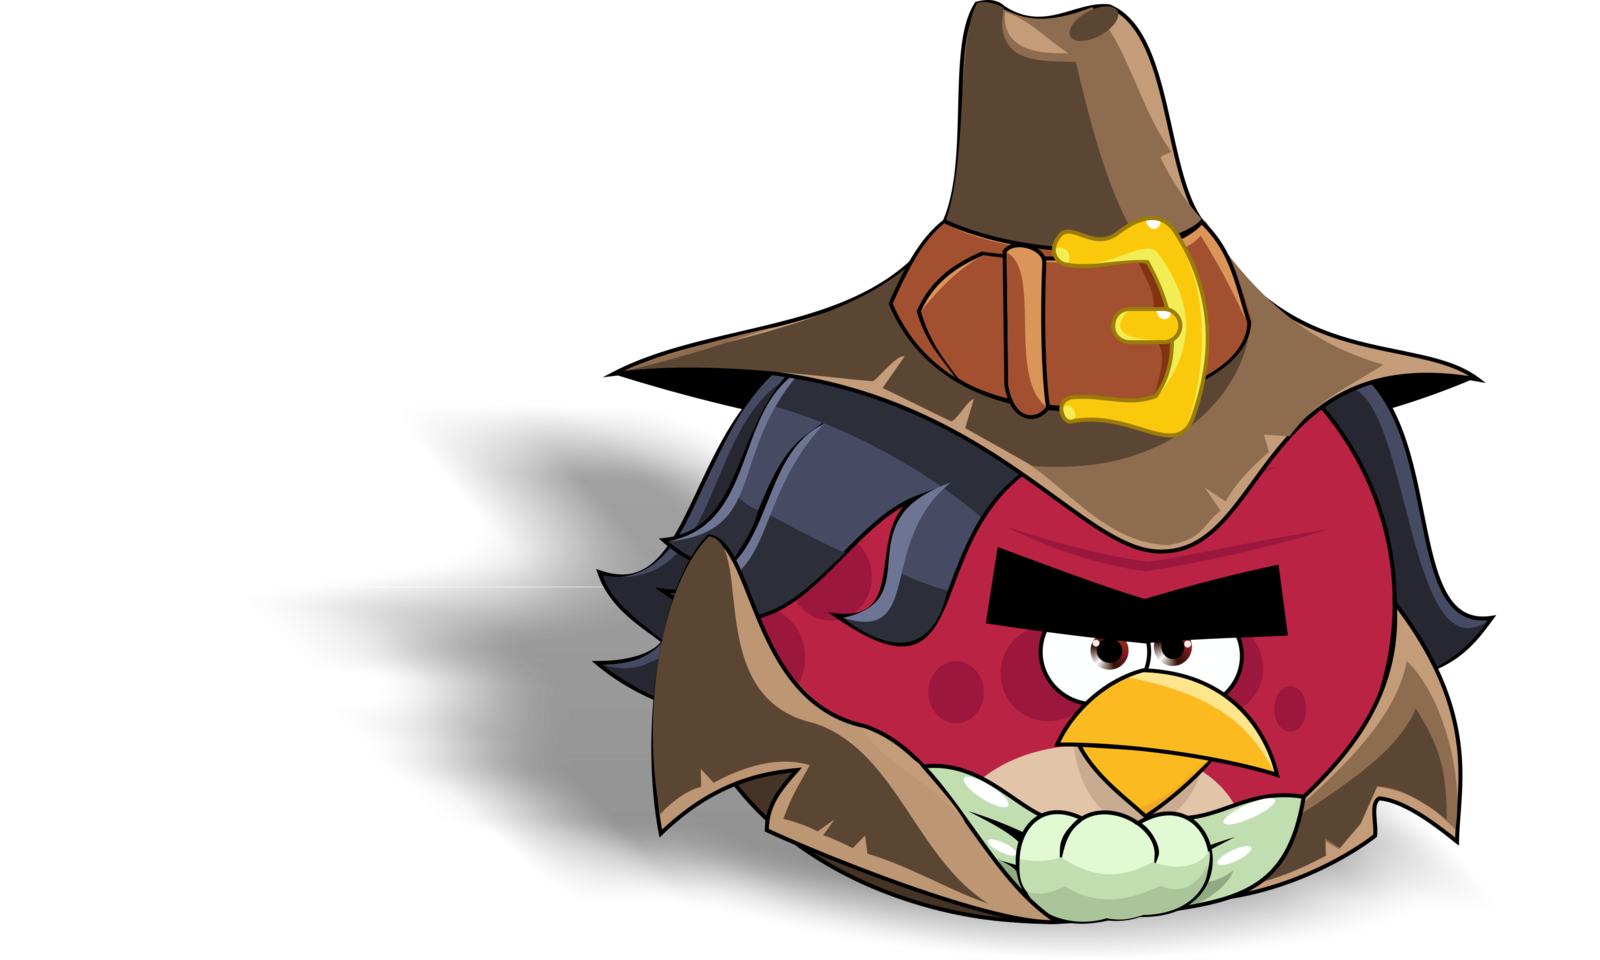 Hunter clipart bird hunter. Terence the angry birds